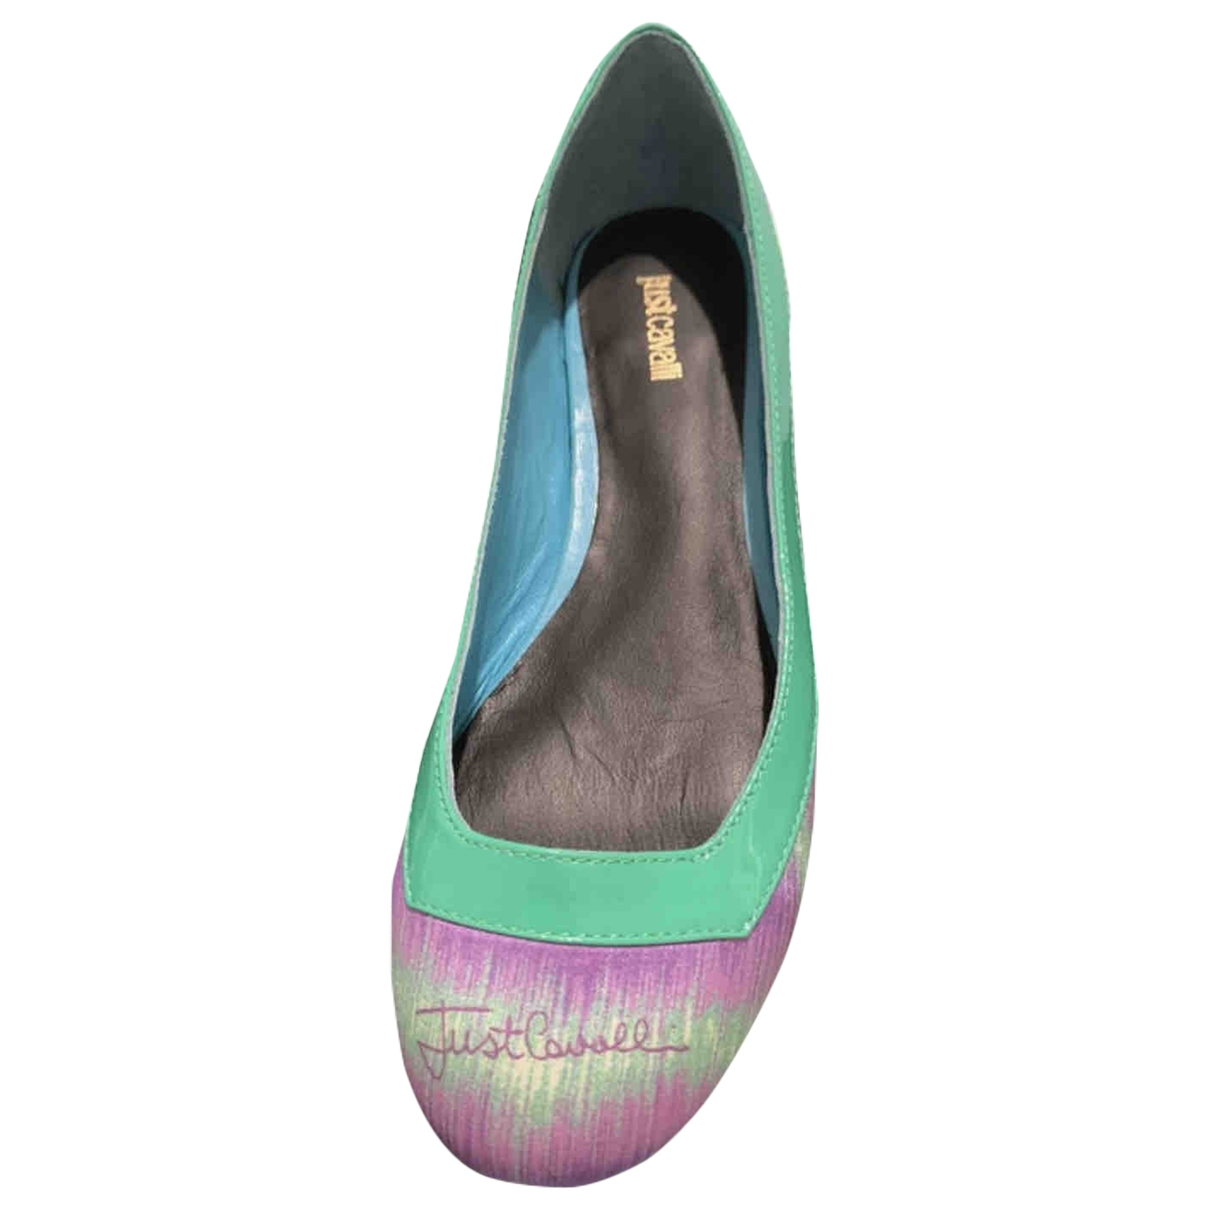 Just Cavalli \N Turquoise Patent leather Ballet flats for Women 36 EU